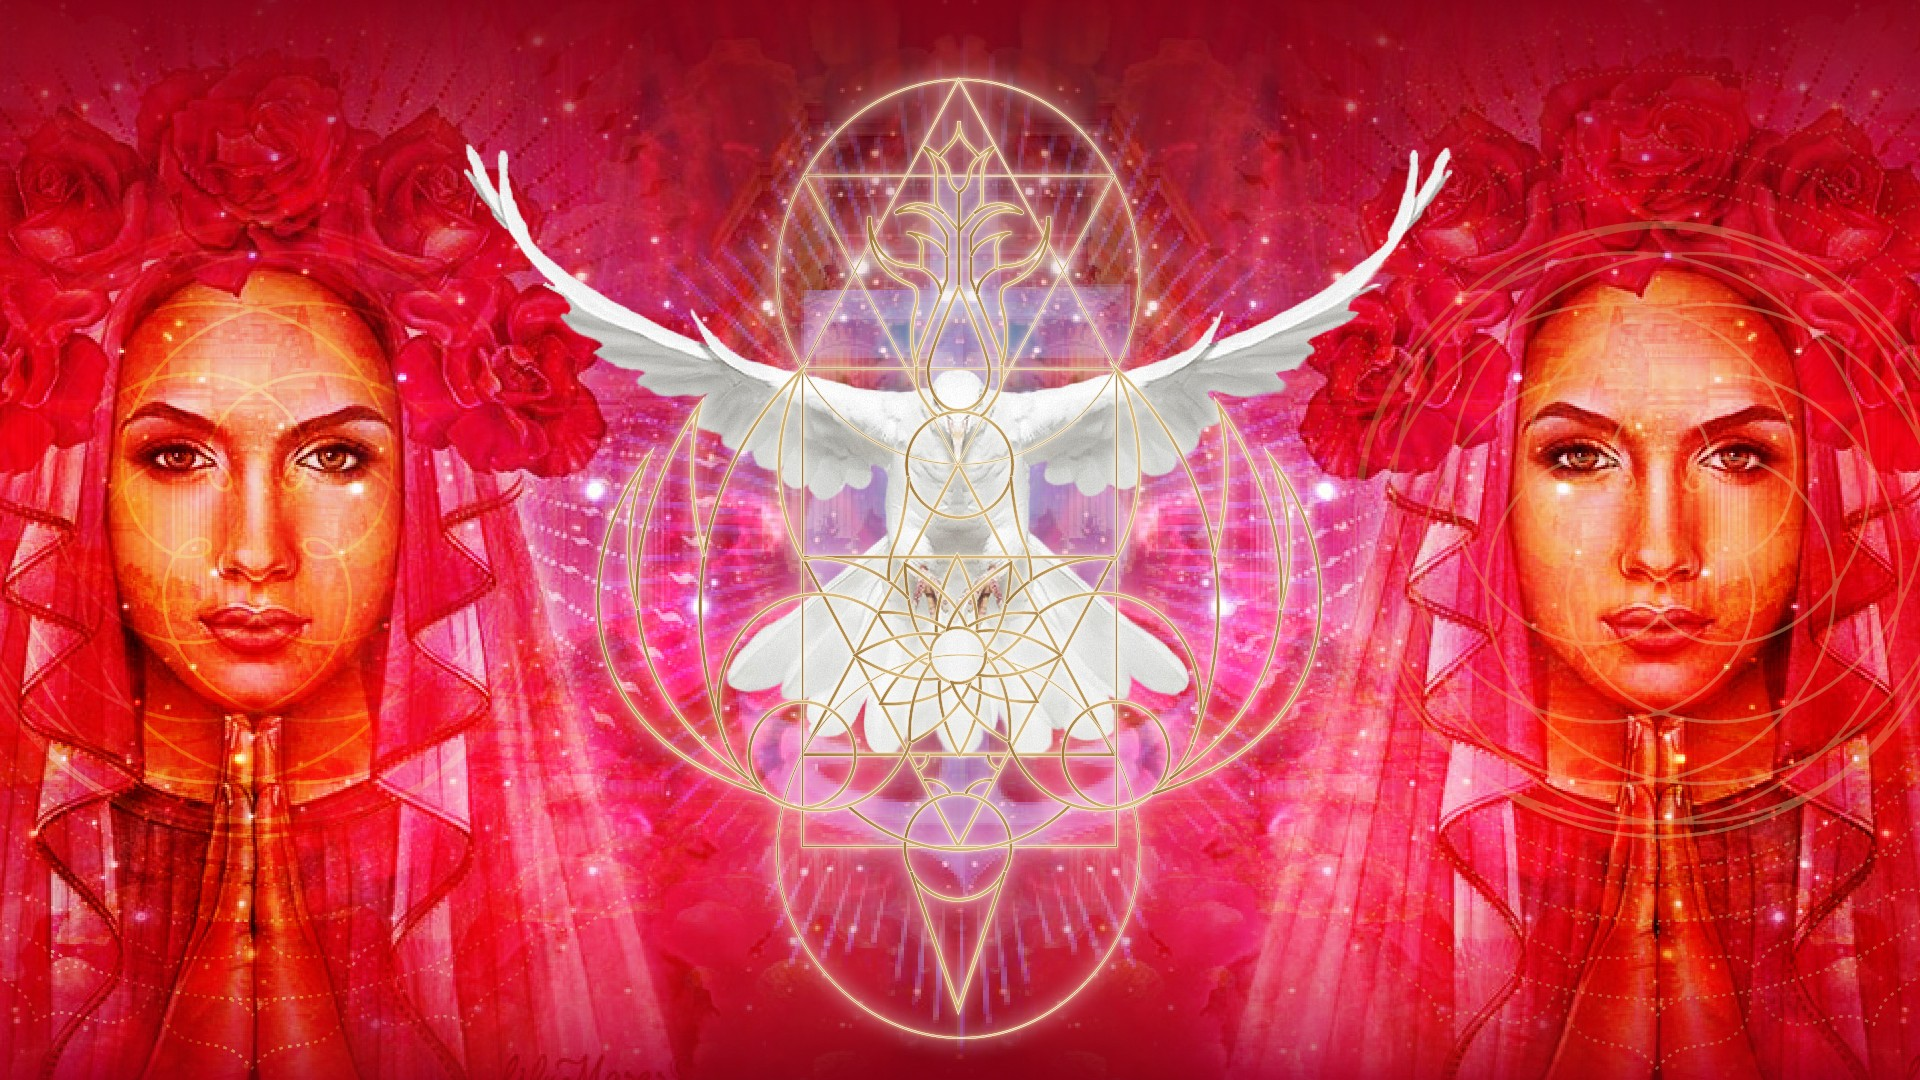 Red Rose R-Evolution - An Initiation with Mary Magdalene